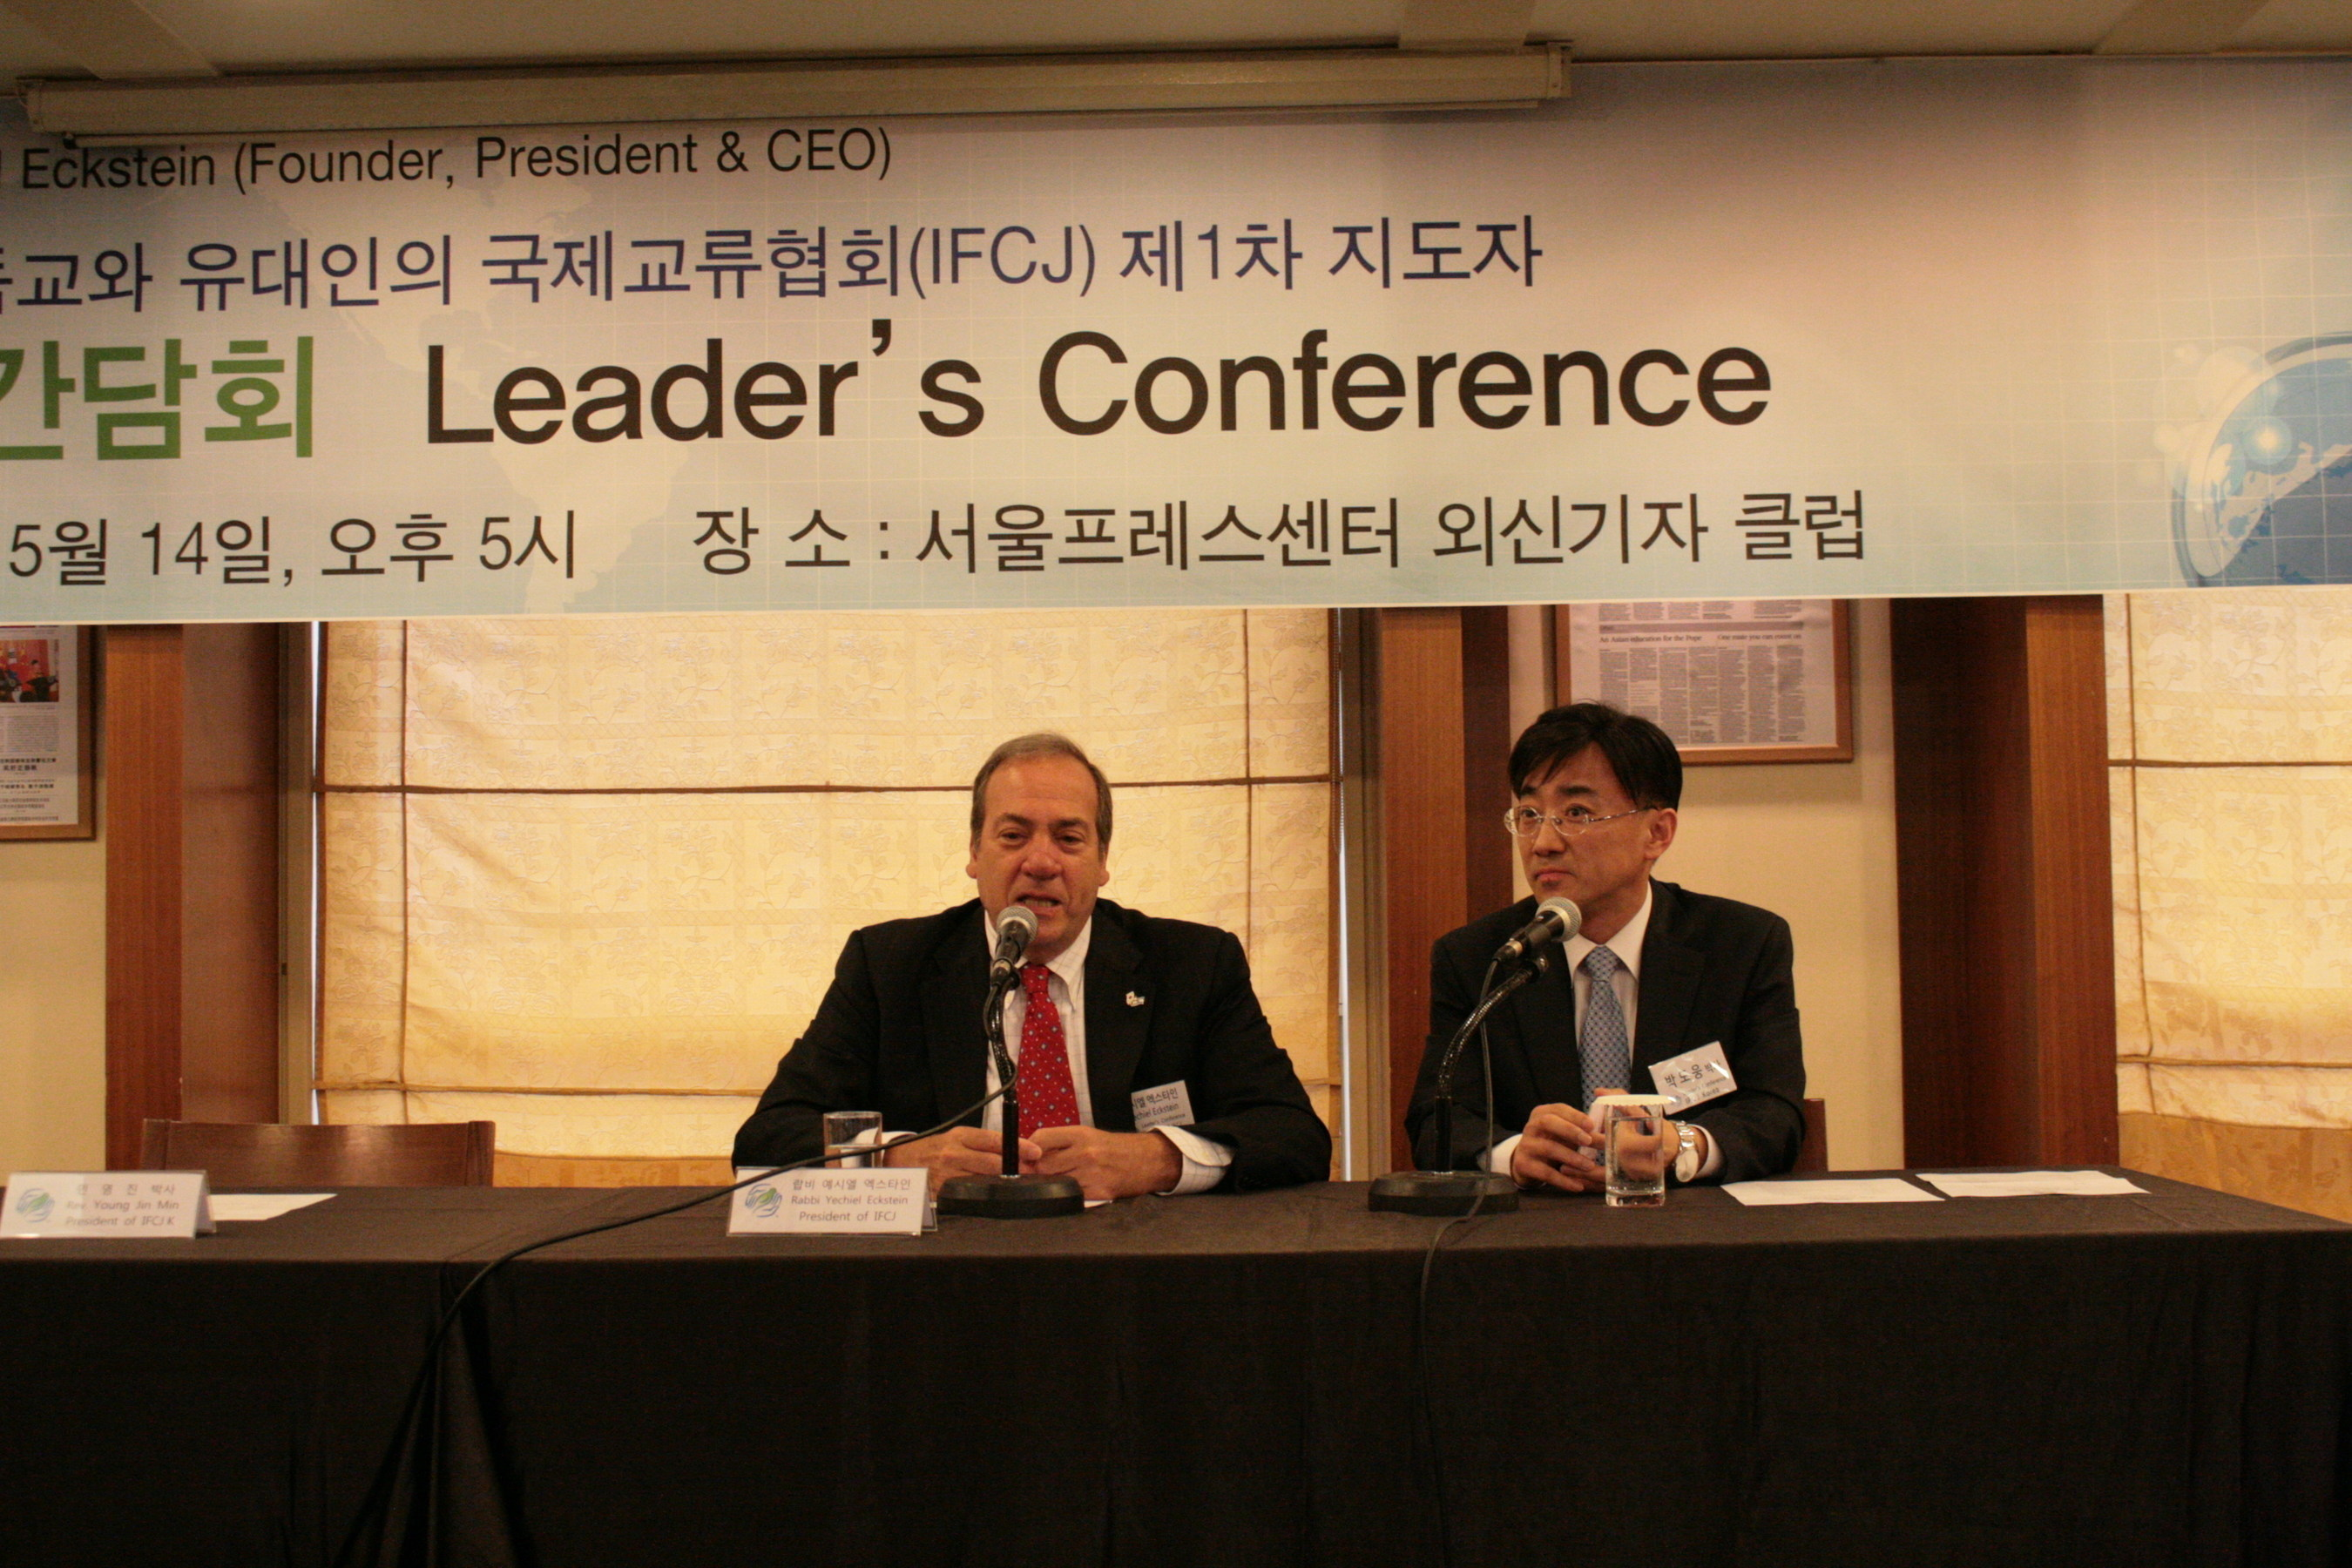 Rabbi Yechiel Eckstein, left, explains the importance of supporting Israel during a press conference in Seoul, South Korea, accompanied by Rev. Park, right, who is helping the International Fellowship of Christians and Jews to establish ties with the Christian communities in Korea and the Far East.